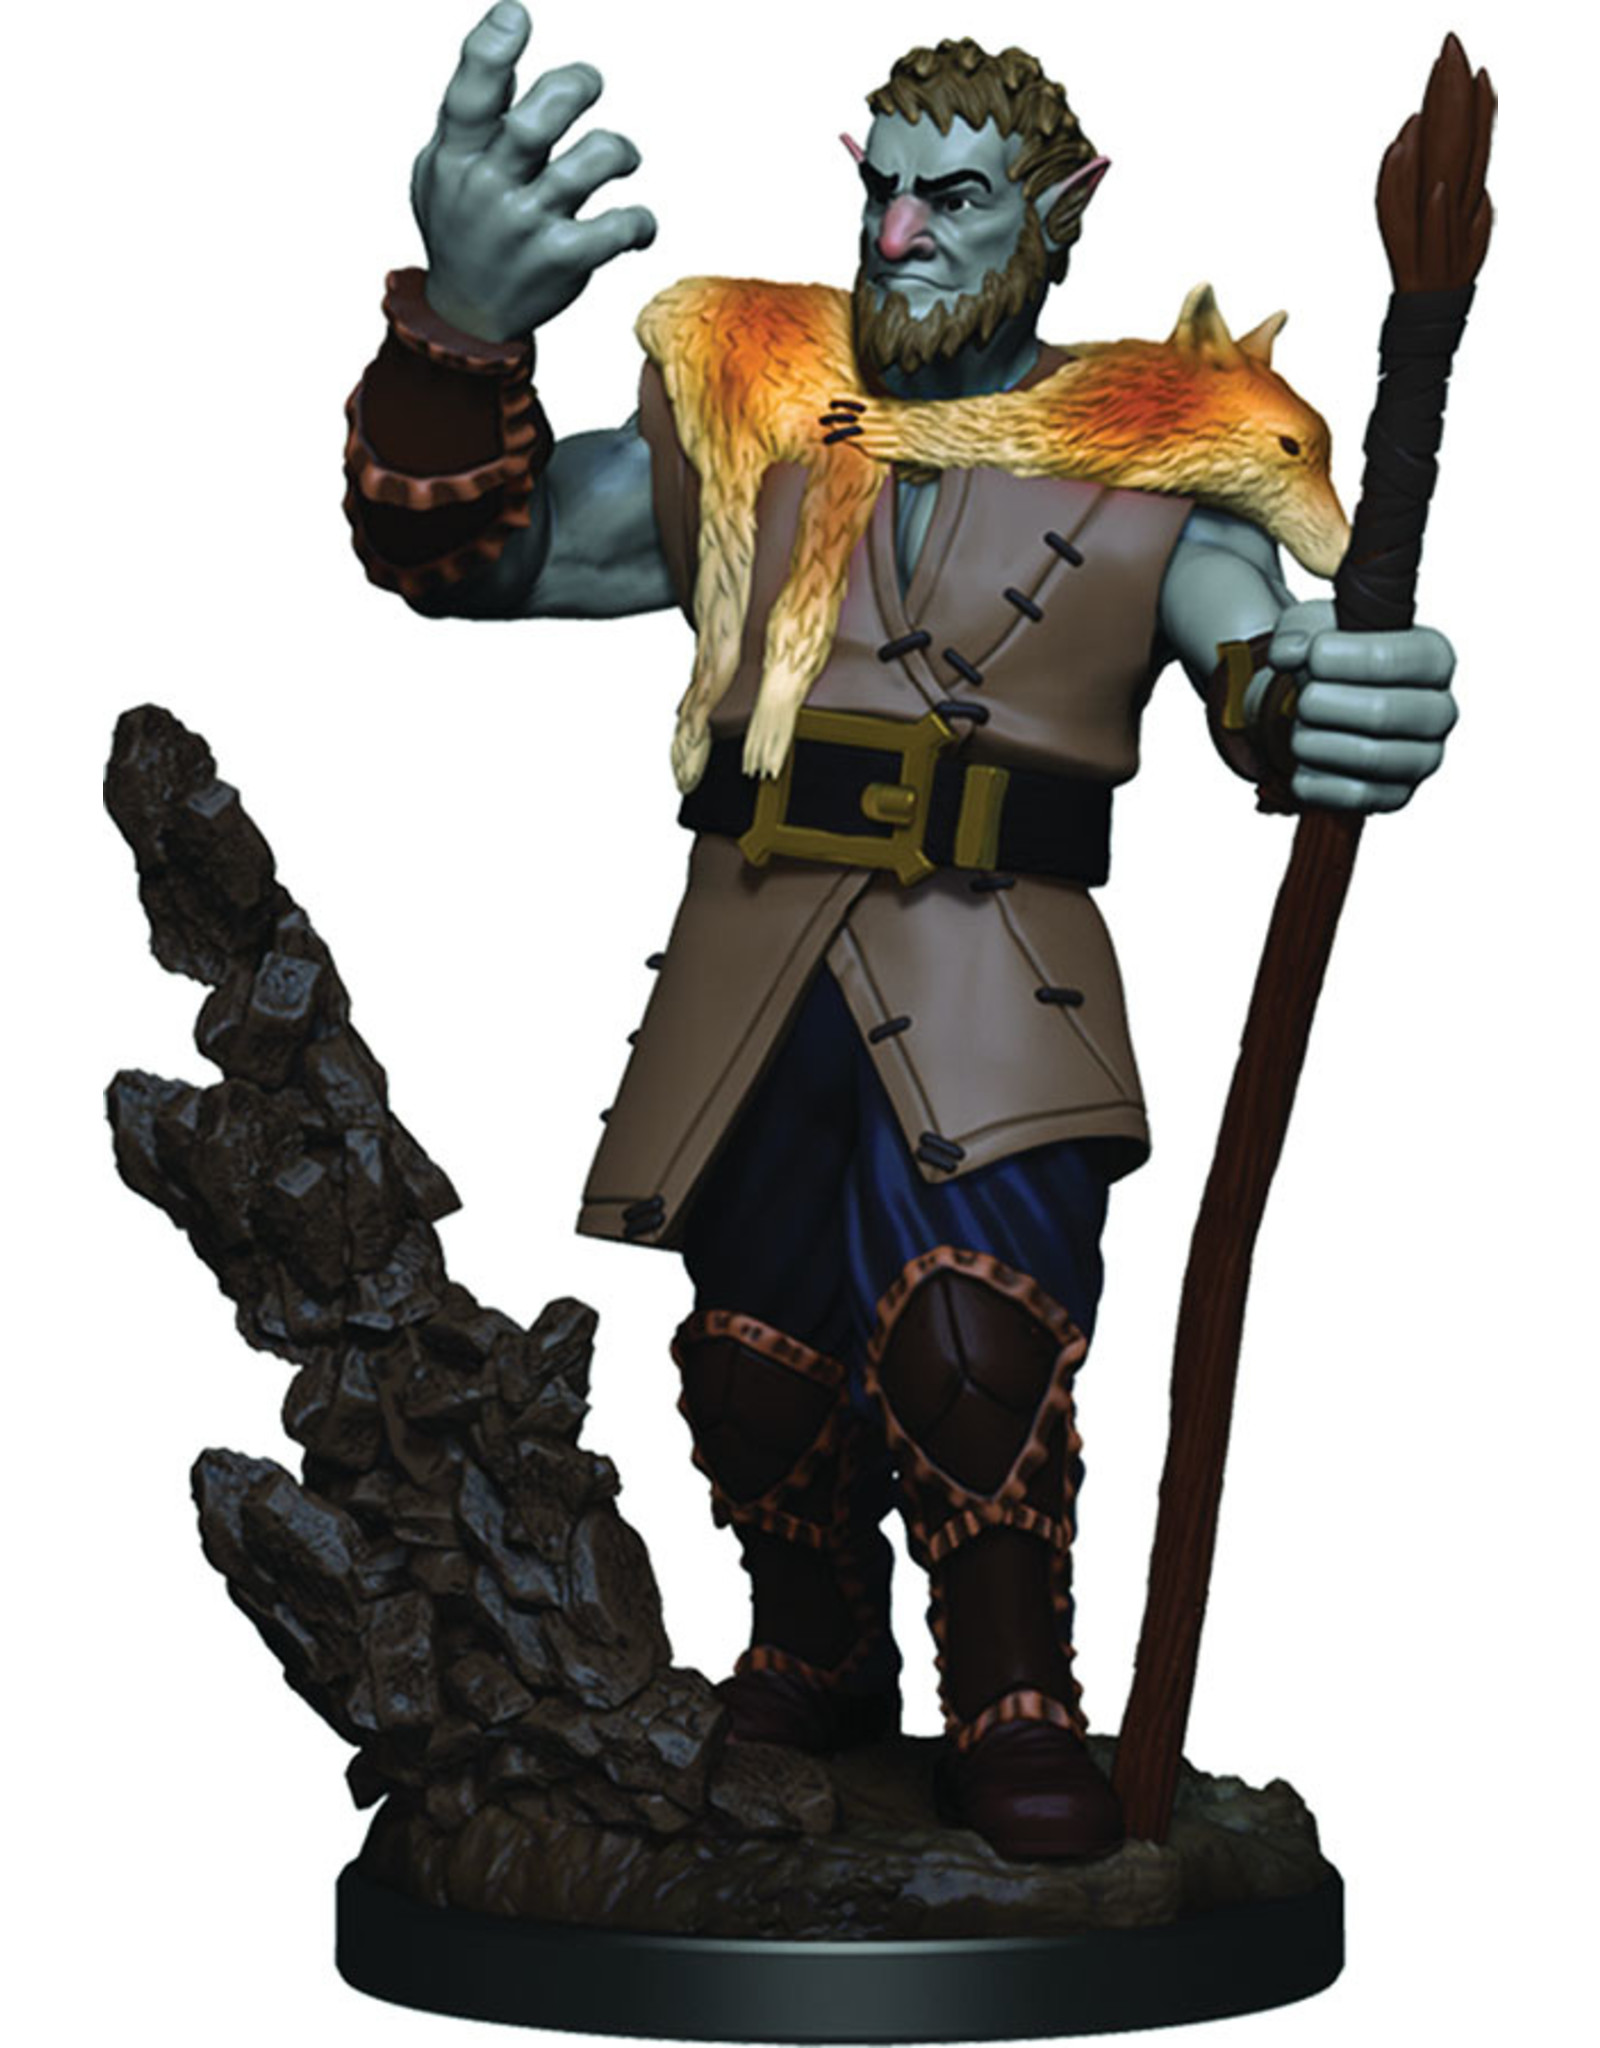 WizKids Dungeons & Dragons Fantasy Miniatures: Icons of the Realms Premium Figures W3 Firbolg Male Druid